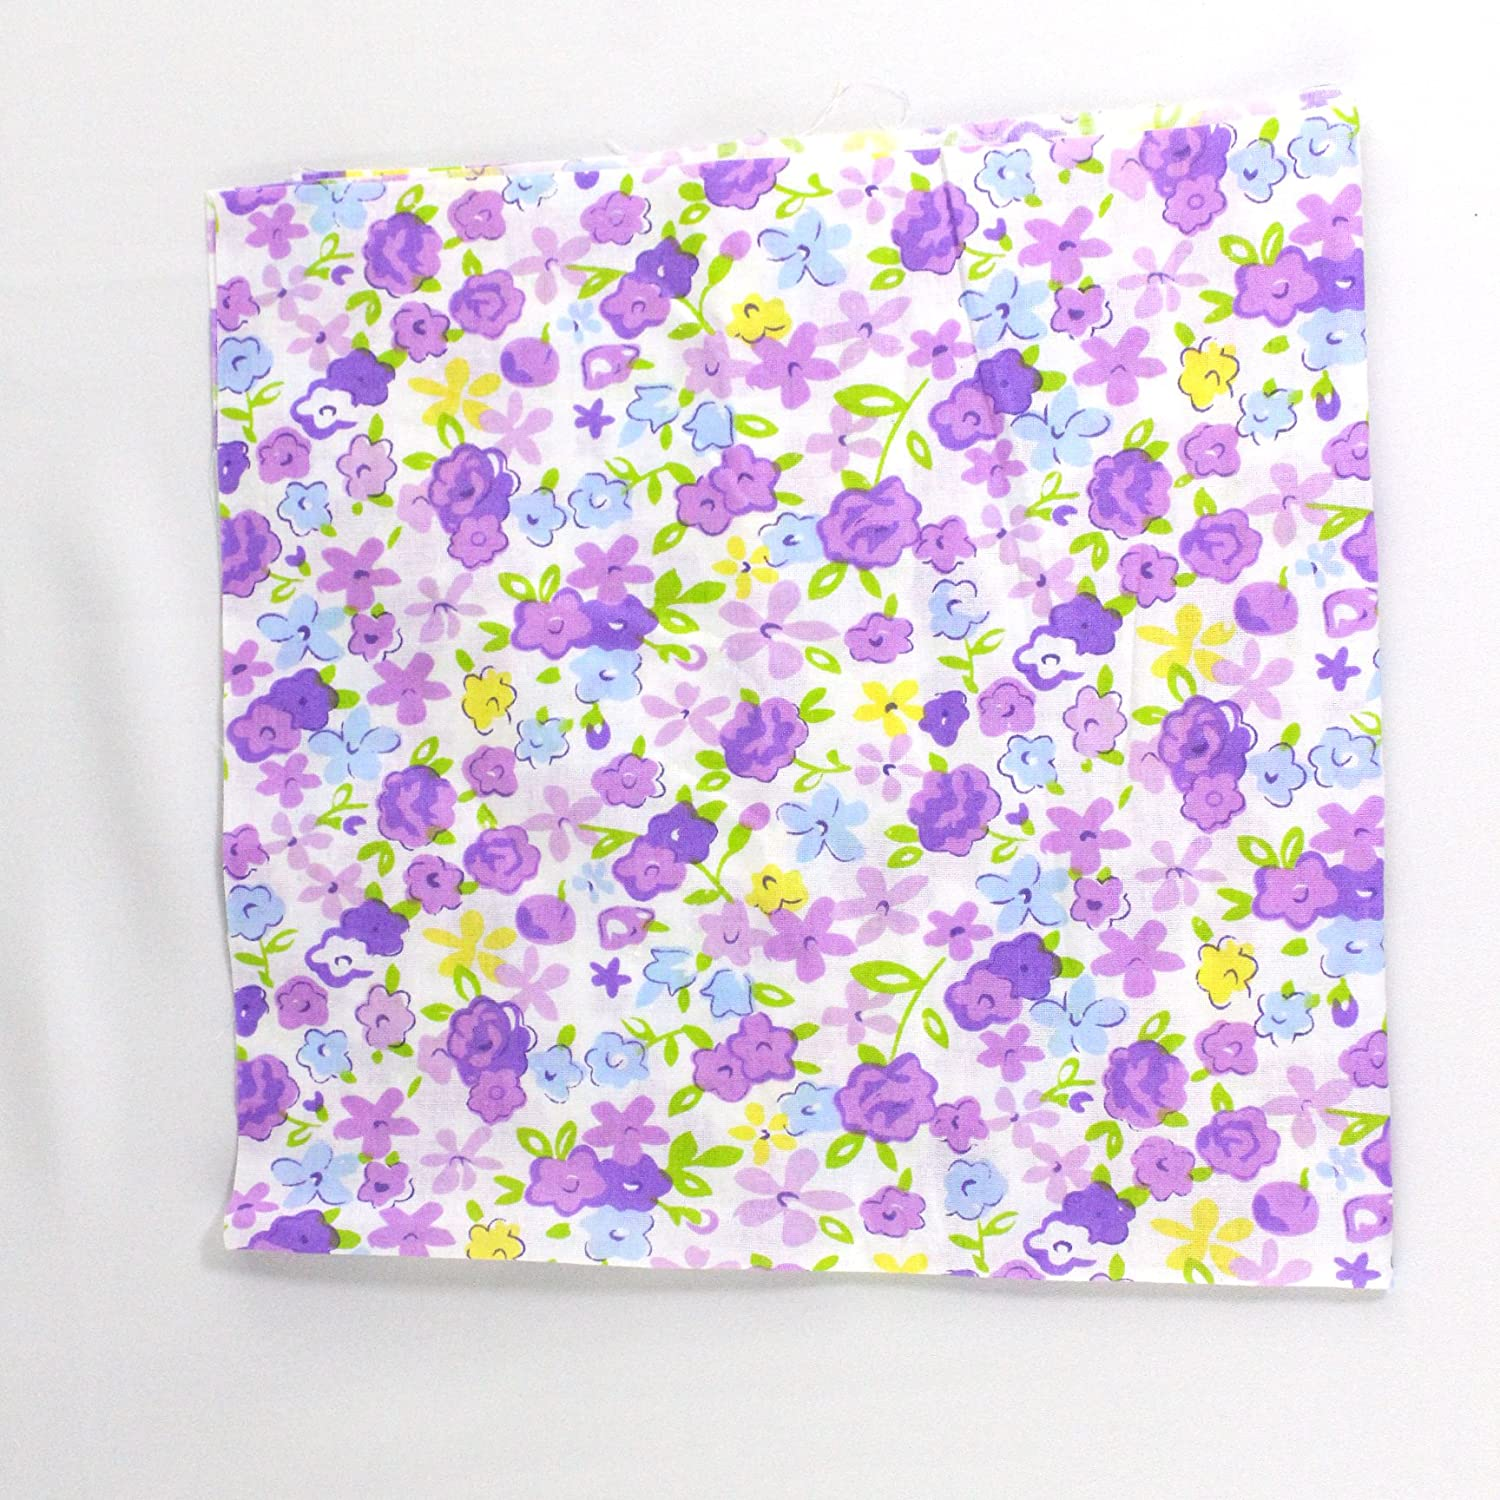 stripe and other Polka dots Cotton Craft Fabric Bundle Pre Cut Squares Patch work DIY Sewing Quilting for DIY Handmade Craft Sewing random styles including colorful floral 50pcs 8x9.5 inch 20x25cm